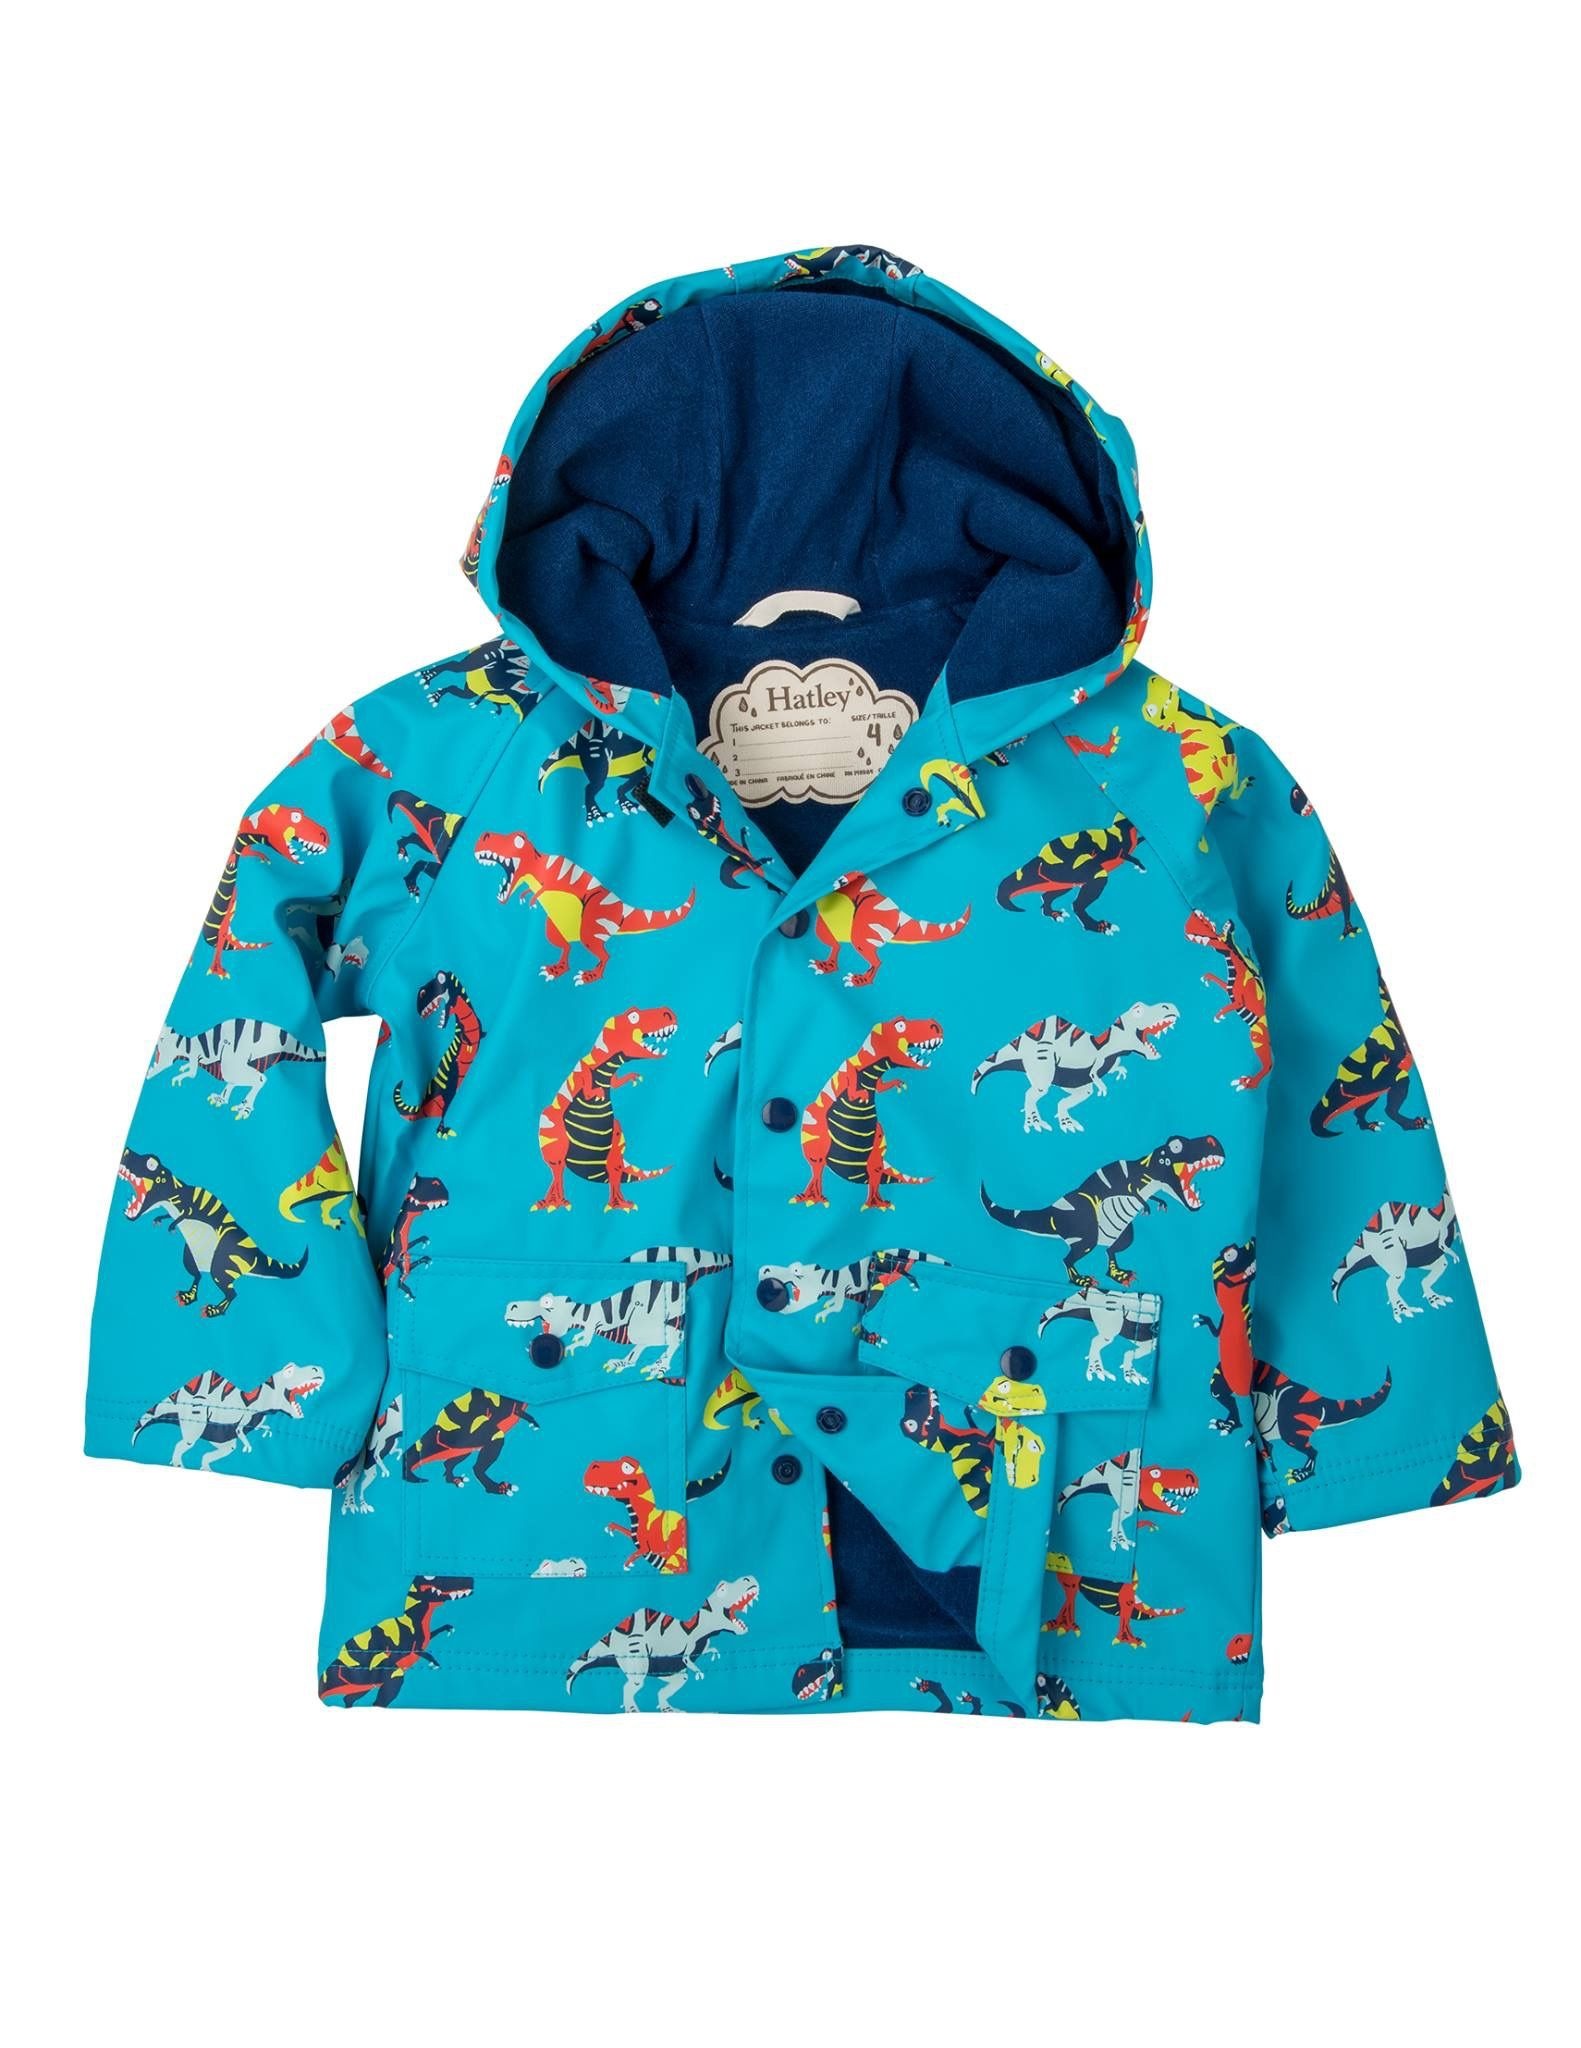 7597fa0d4 Pin by Popsy and Peanut on Popsy   Peanut  Hatley ☔ Coats